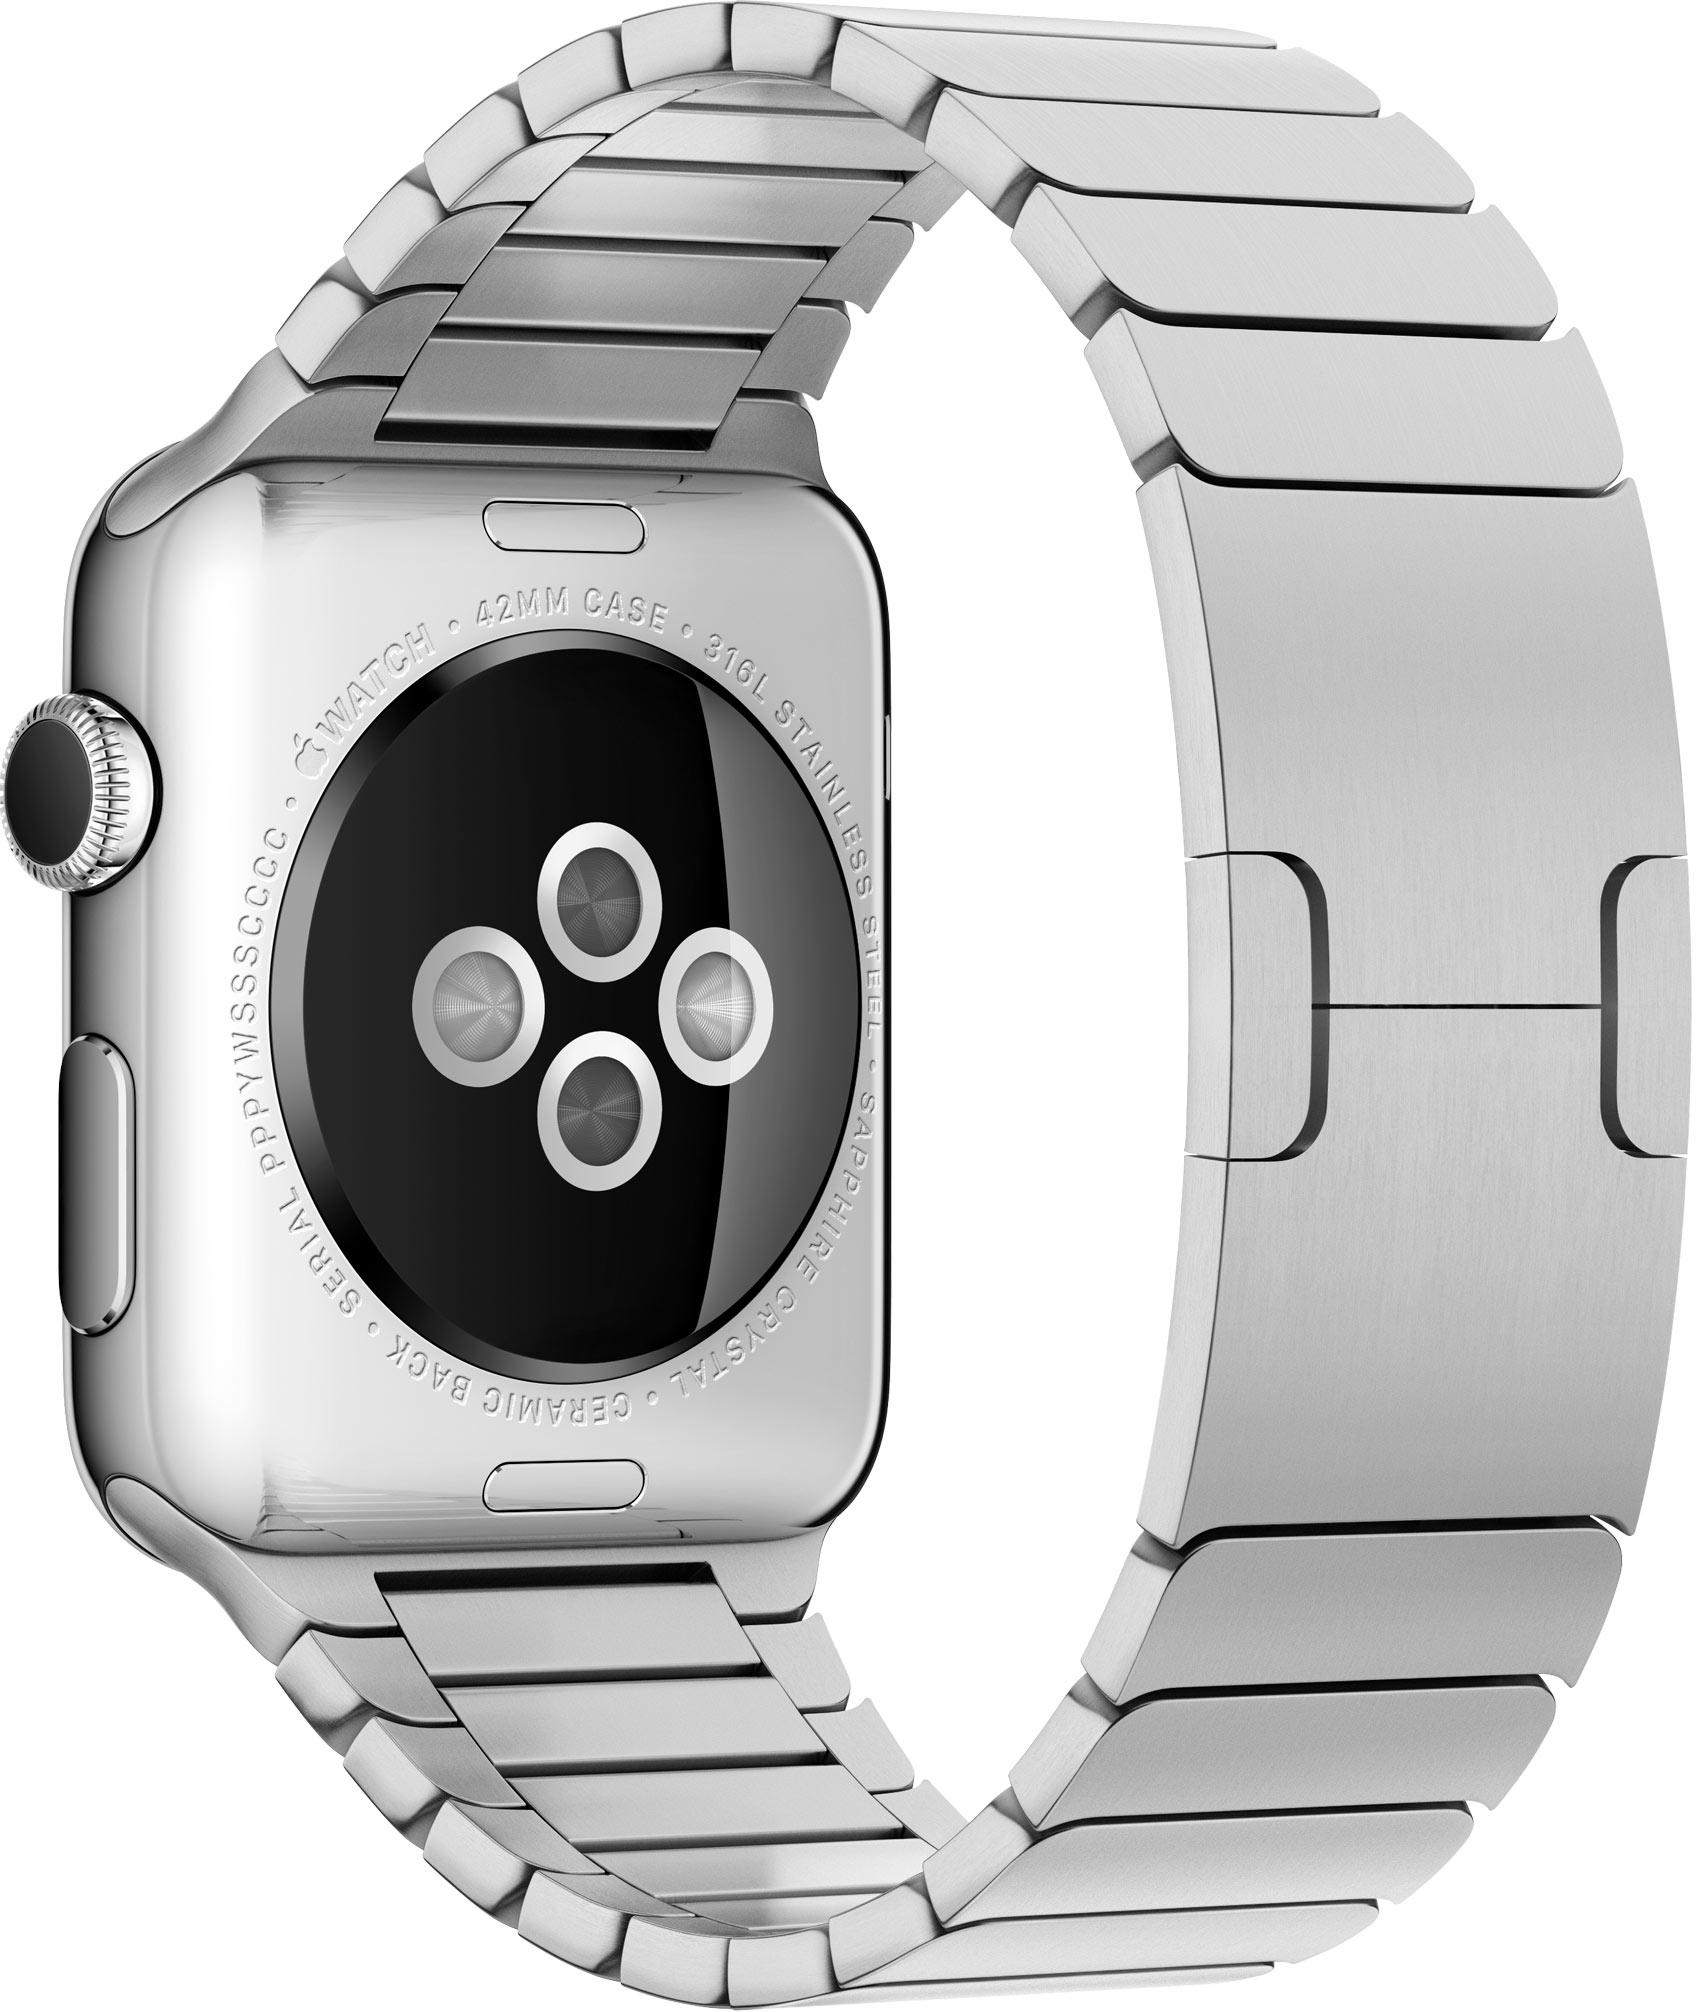 Sensores do Apple Watch